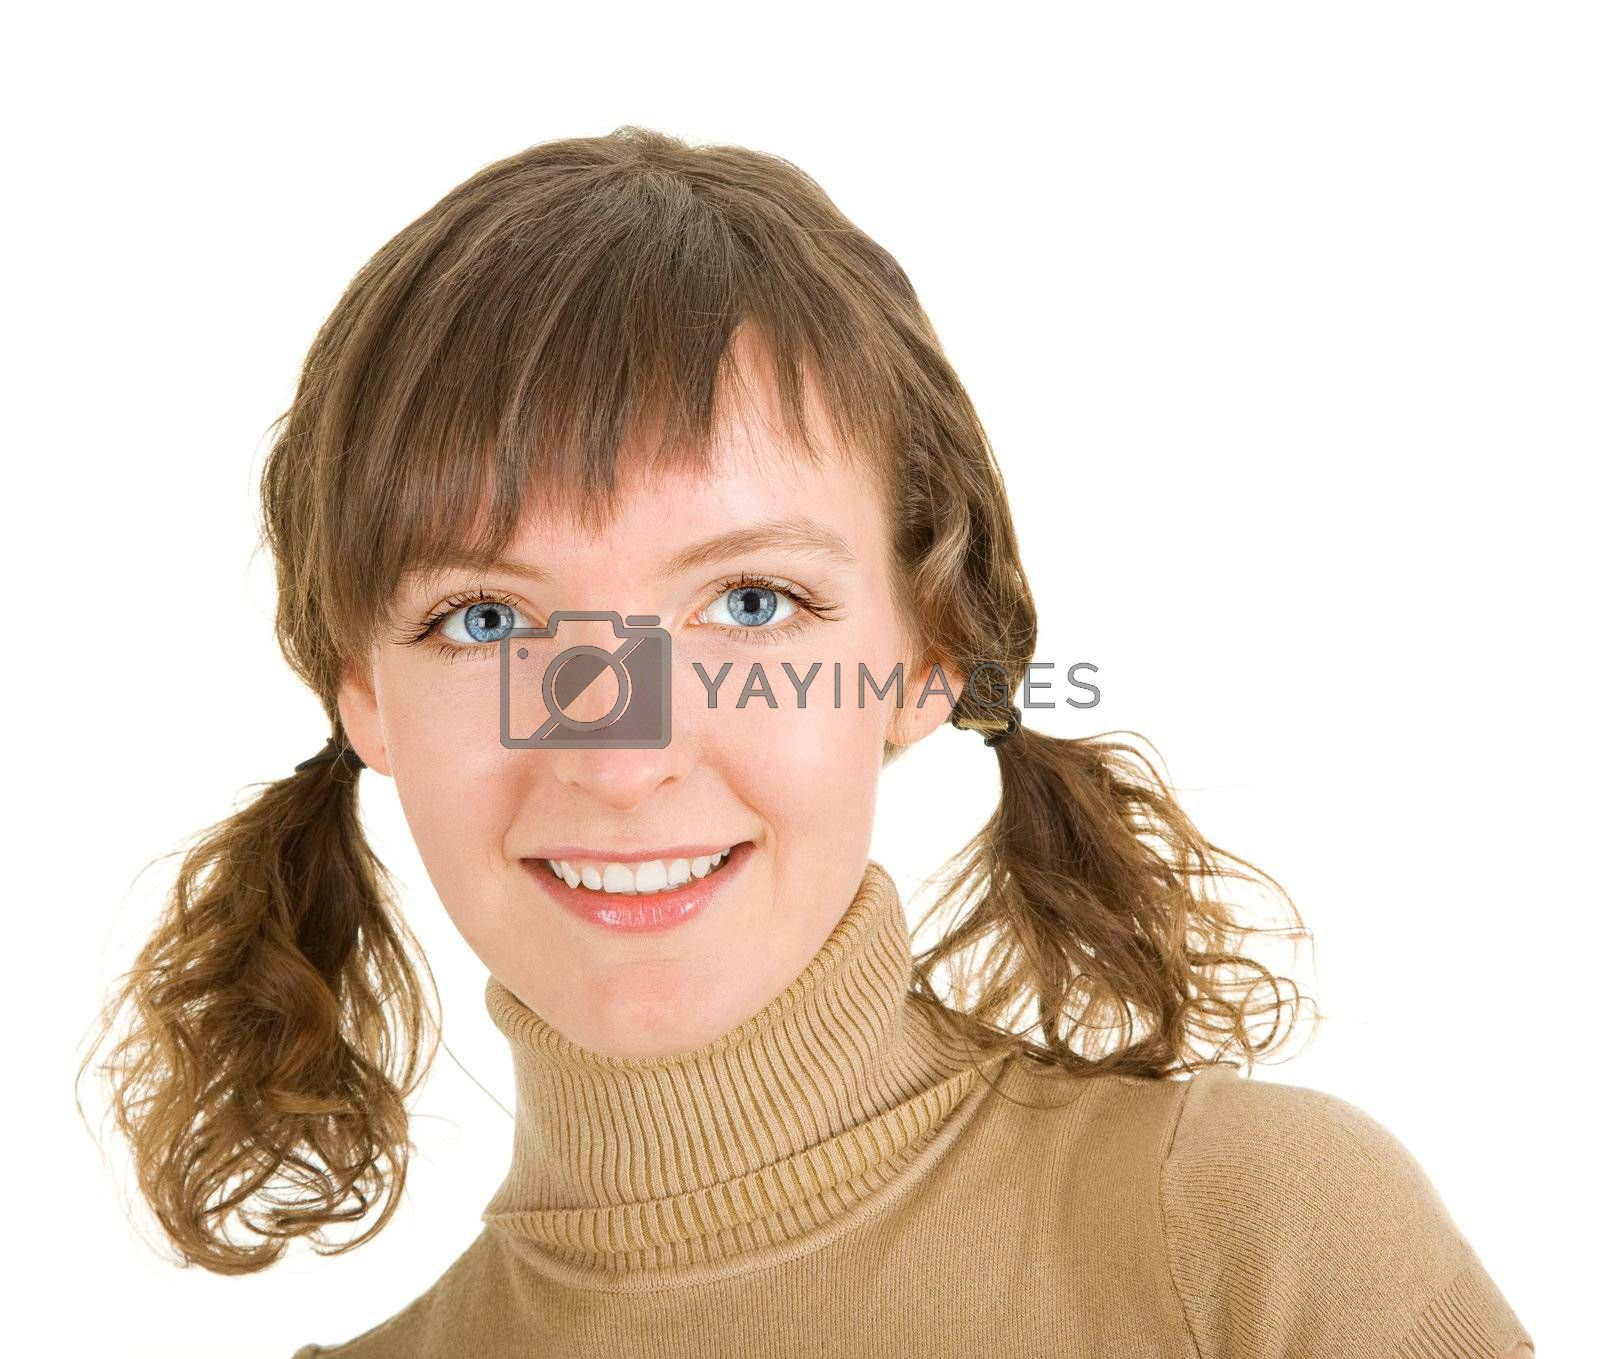 girl with braids on a white background